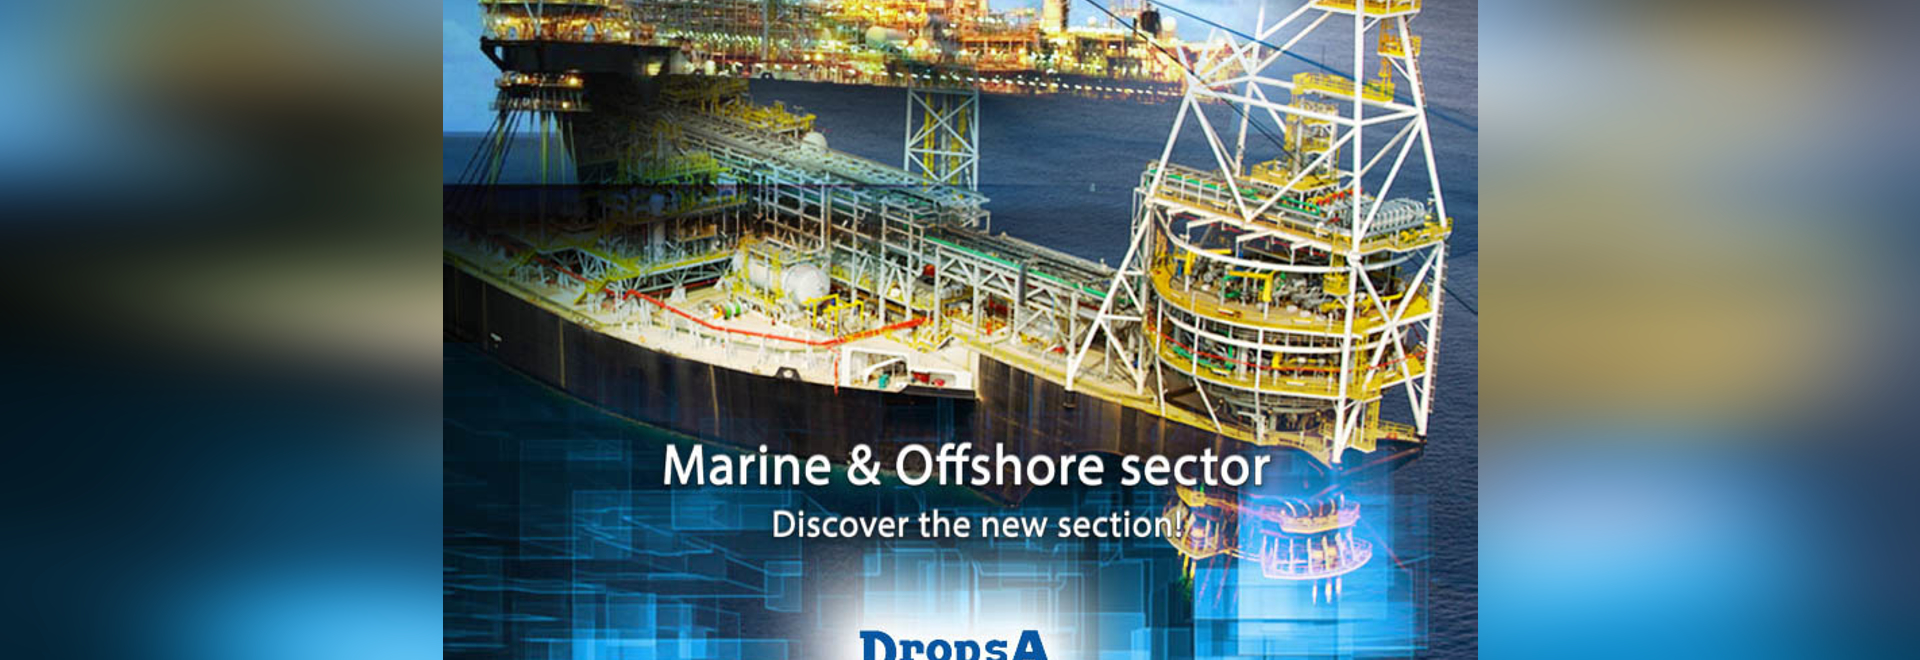 Lubrication system for the Marine & Offshore sector